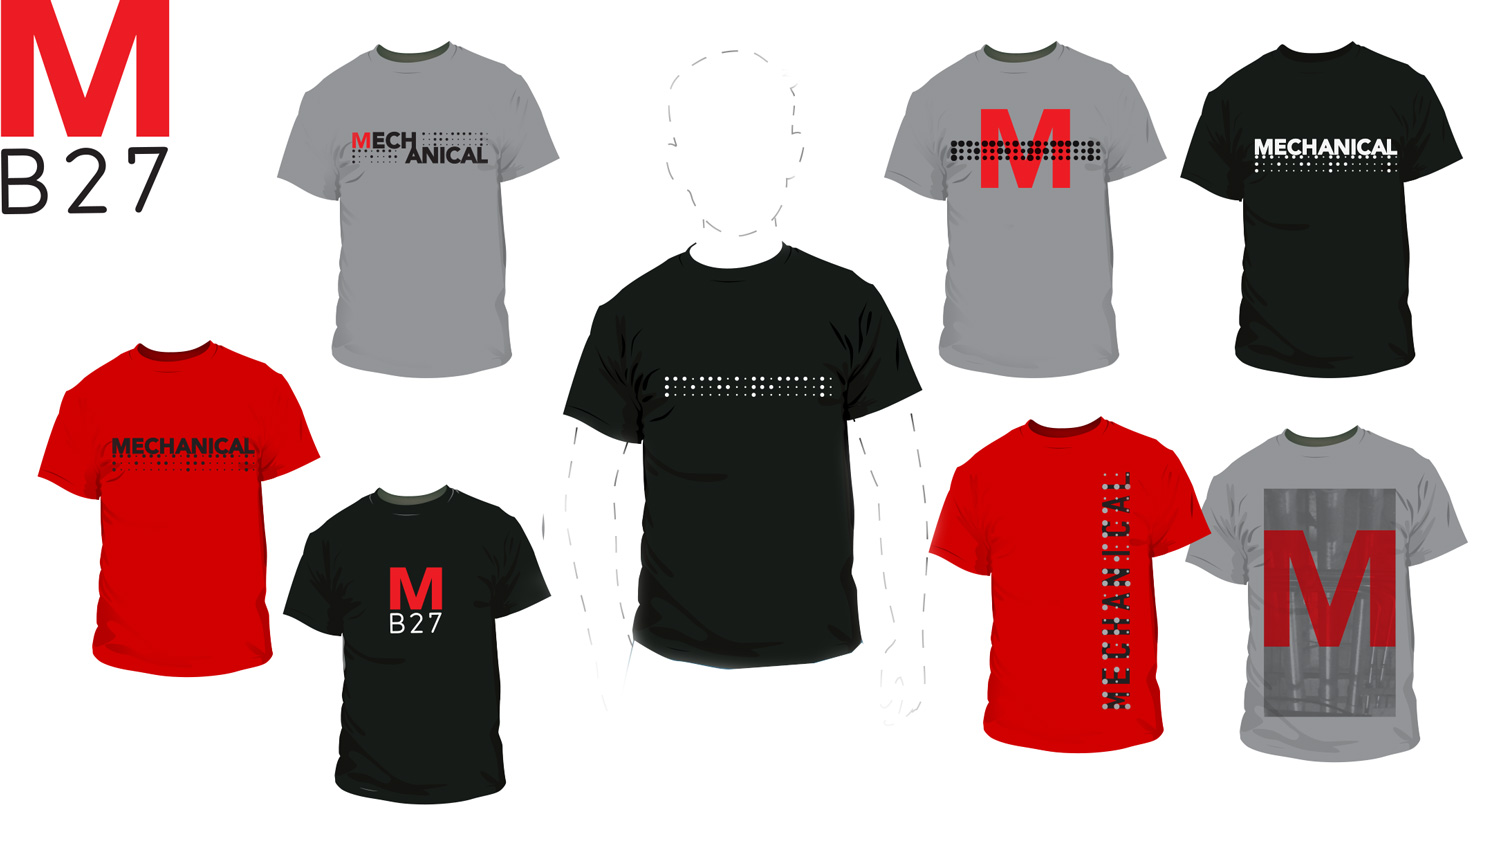 Mechanical T-Shirts -  Initial batch of logo T's. A little on the plain side;these were using graphics from stickers, cards, and social media posts.